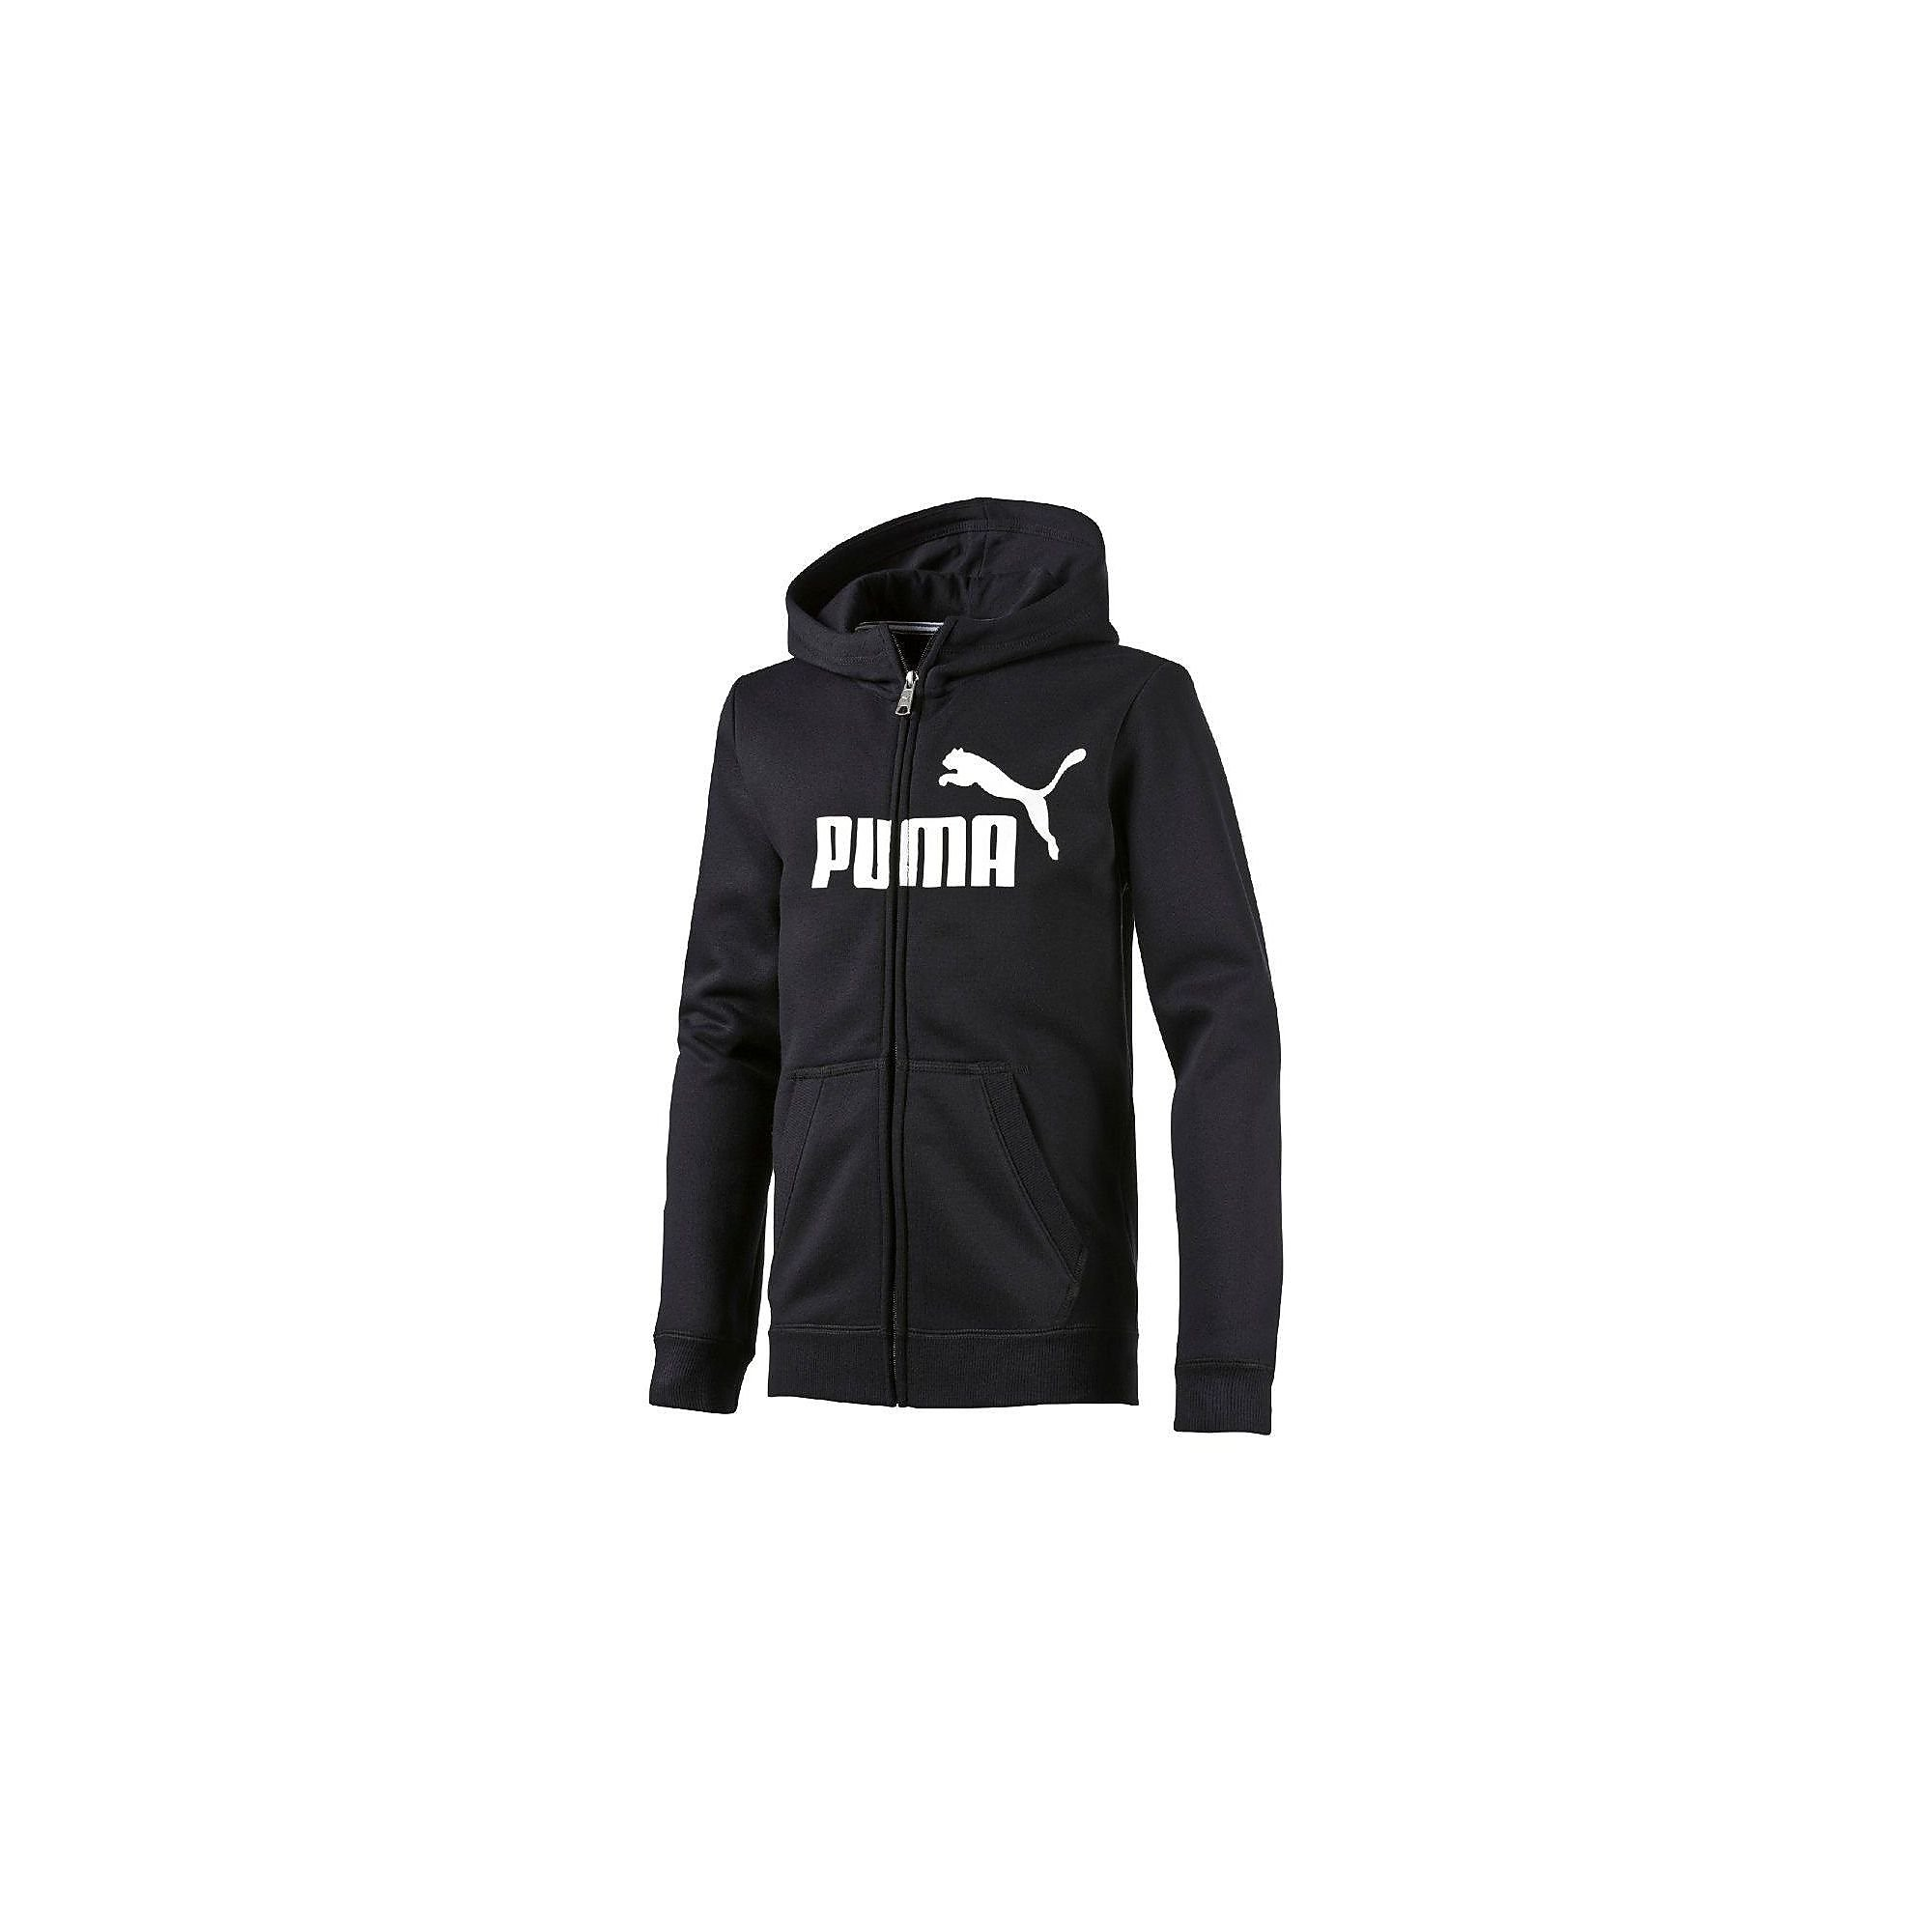 PUMA ESSENTIAL LOGO HOODED SWEAT JACKET